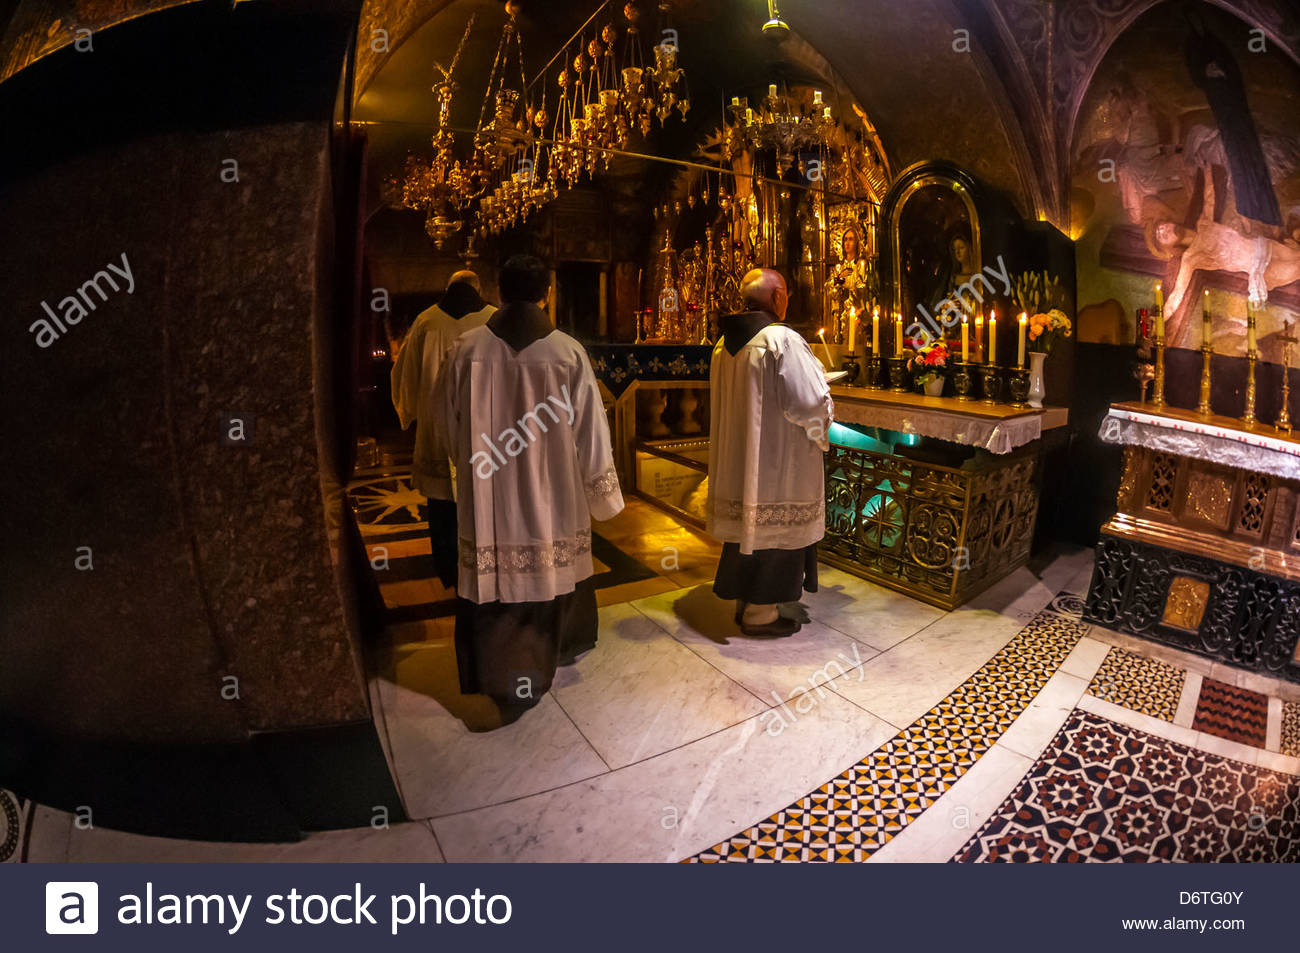 A Roman Catholic Mass in the Church of the Holy Sepulchre (site of the last five stations of the Cross and venerated - Stock Image